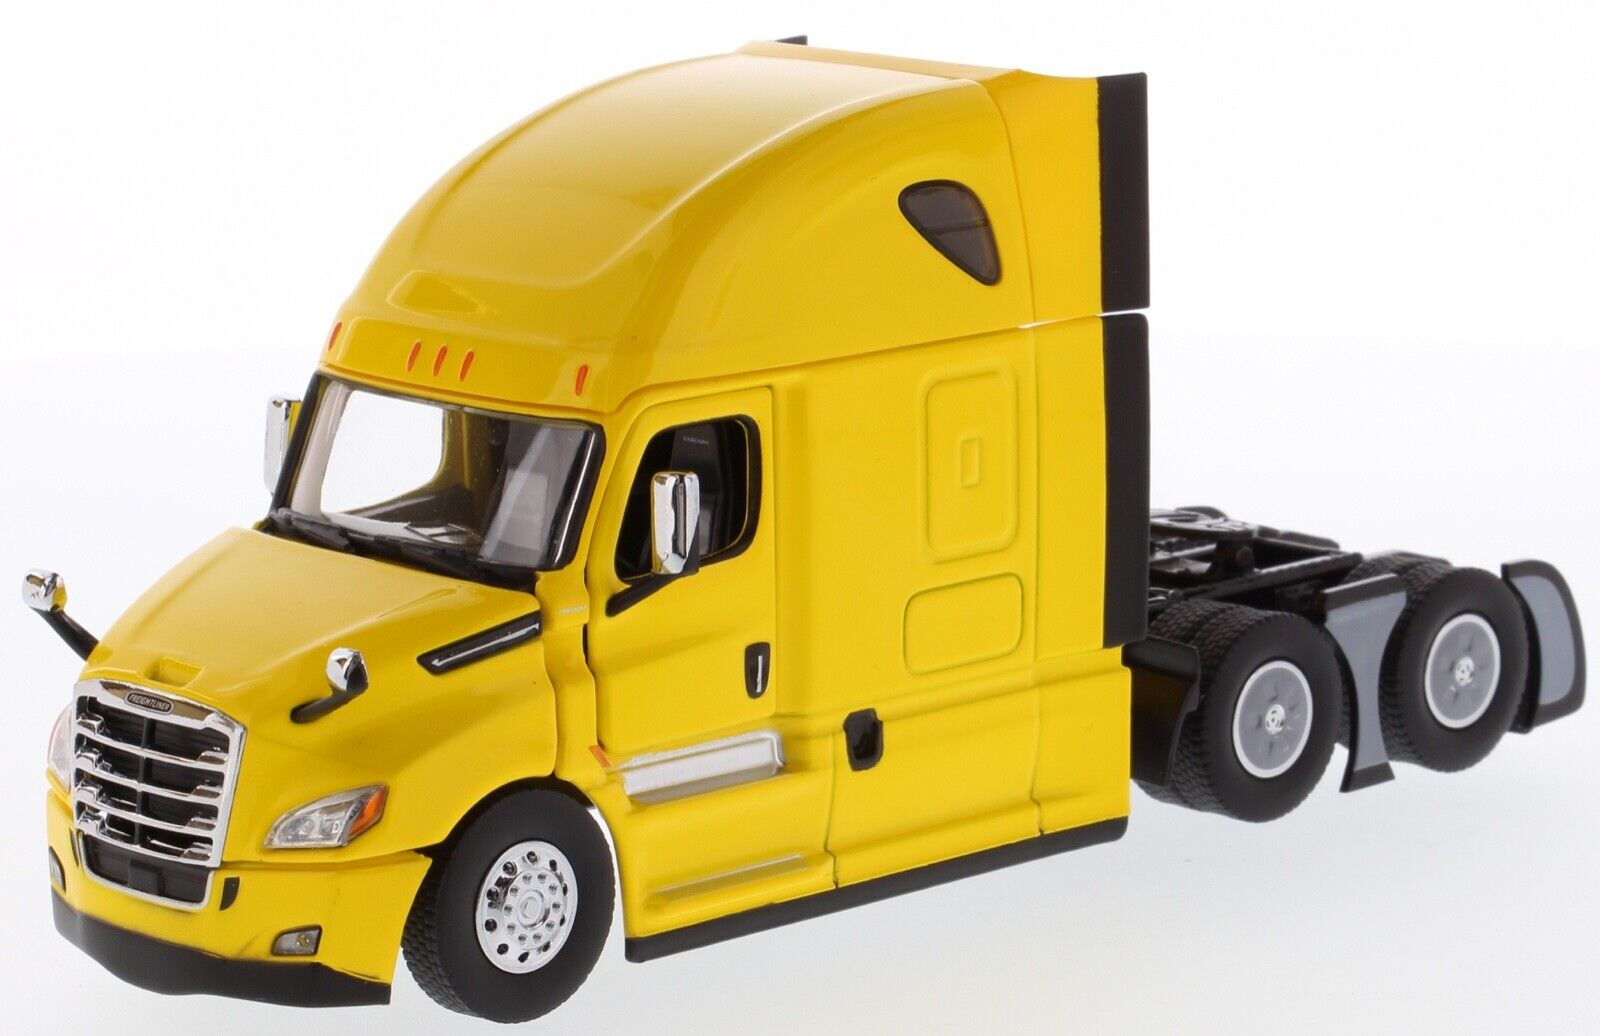 Freightliner 1 50 scale New Cascadia Gelb 71031 Diecast Masters